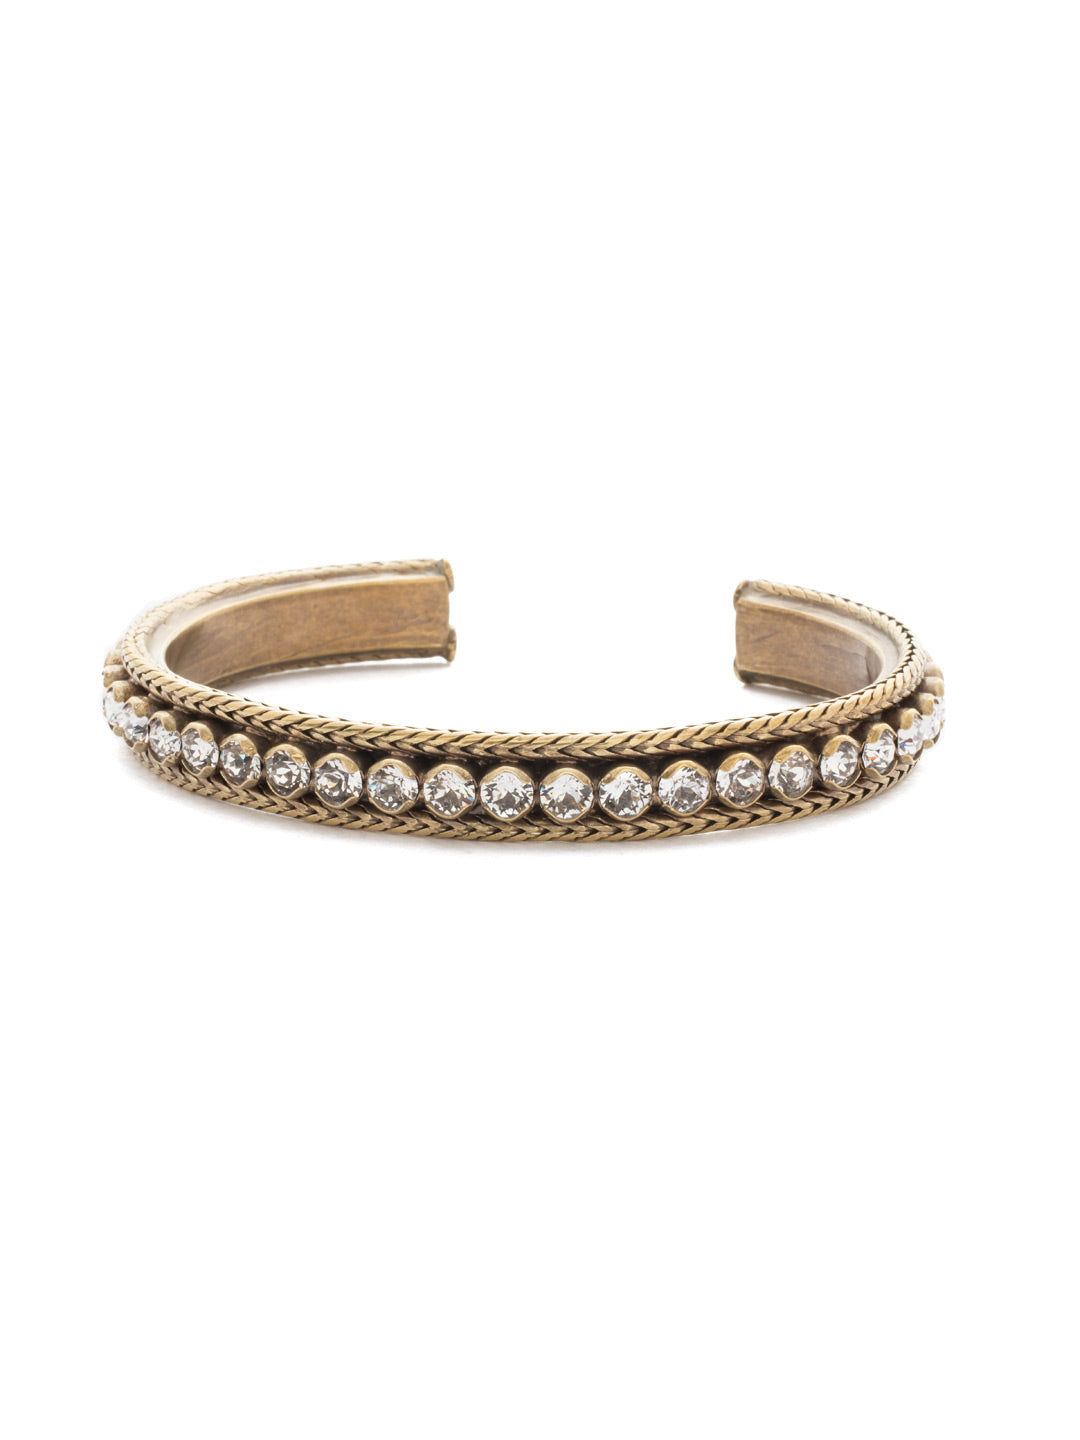 Channeling Chic Cuff Bracelet - BDM6AGCRY